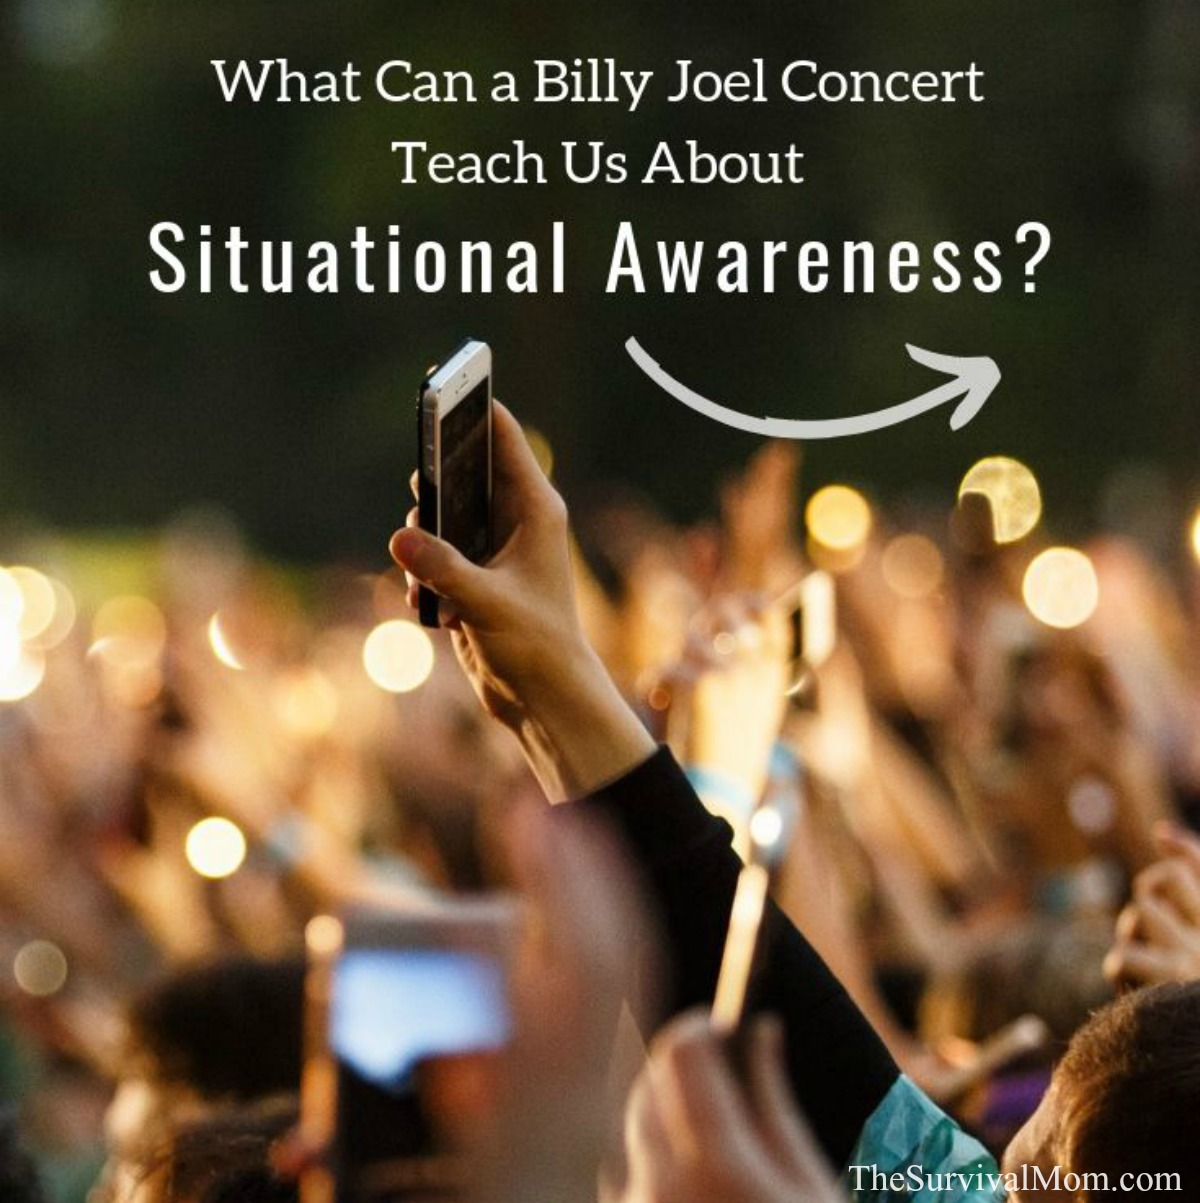 What Can a Billy Joel Concert Teach Us About Situational Awareness via The Survival Mom